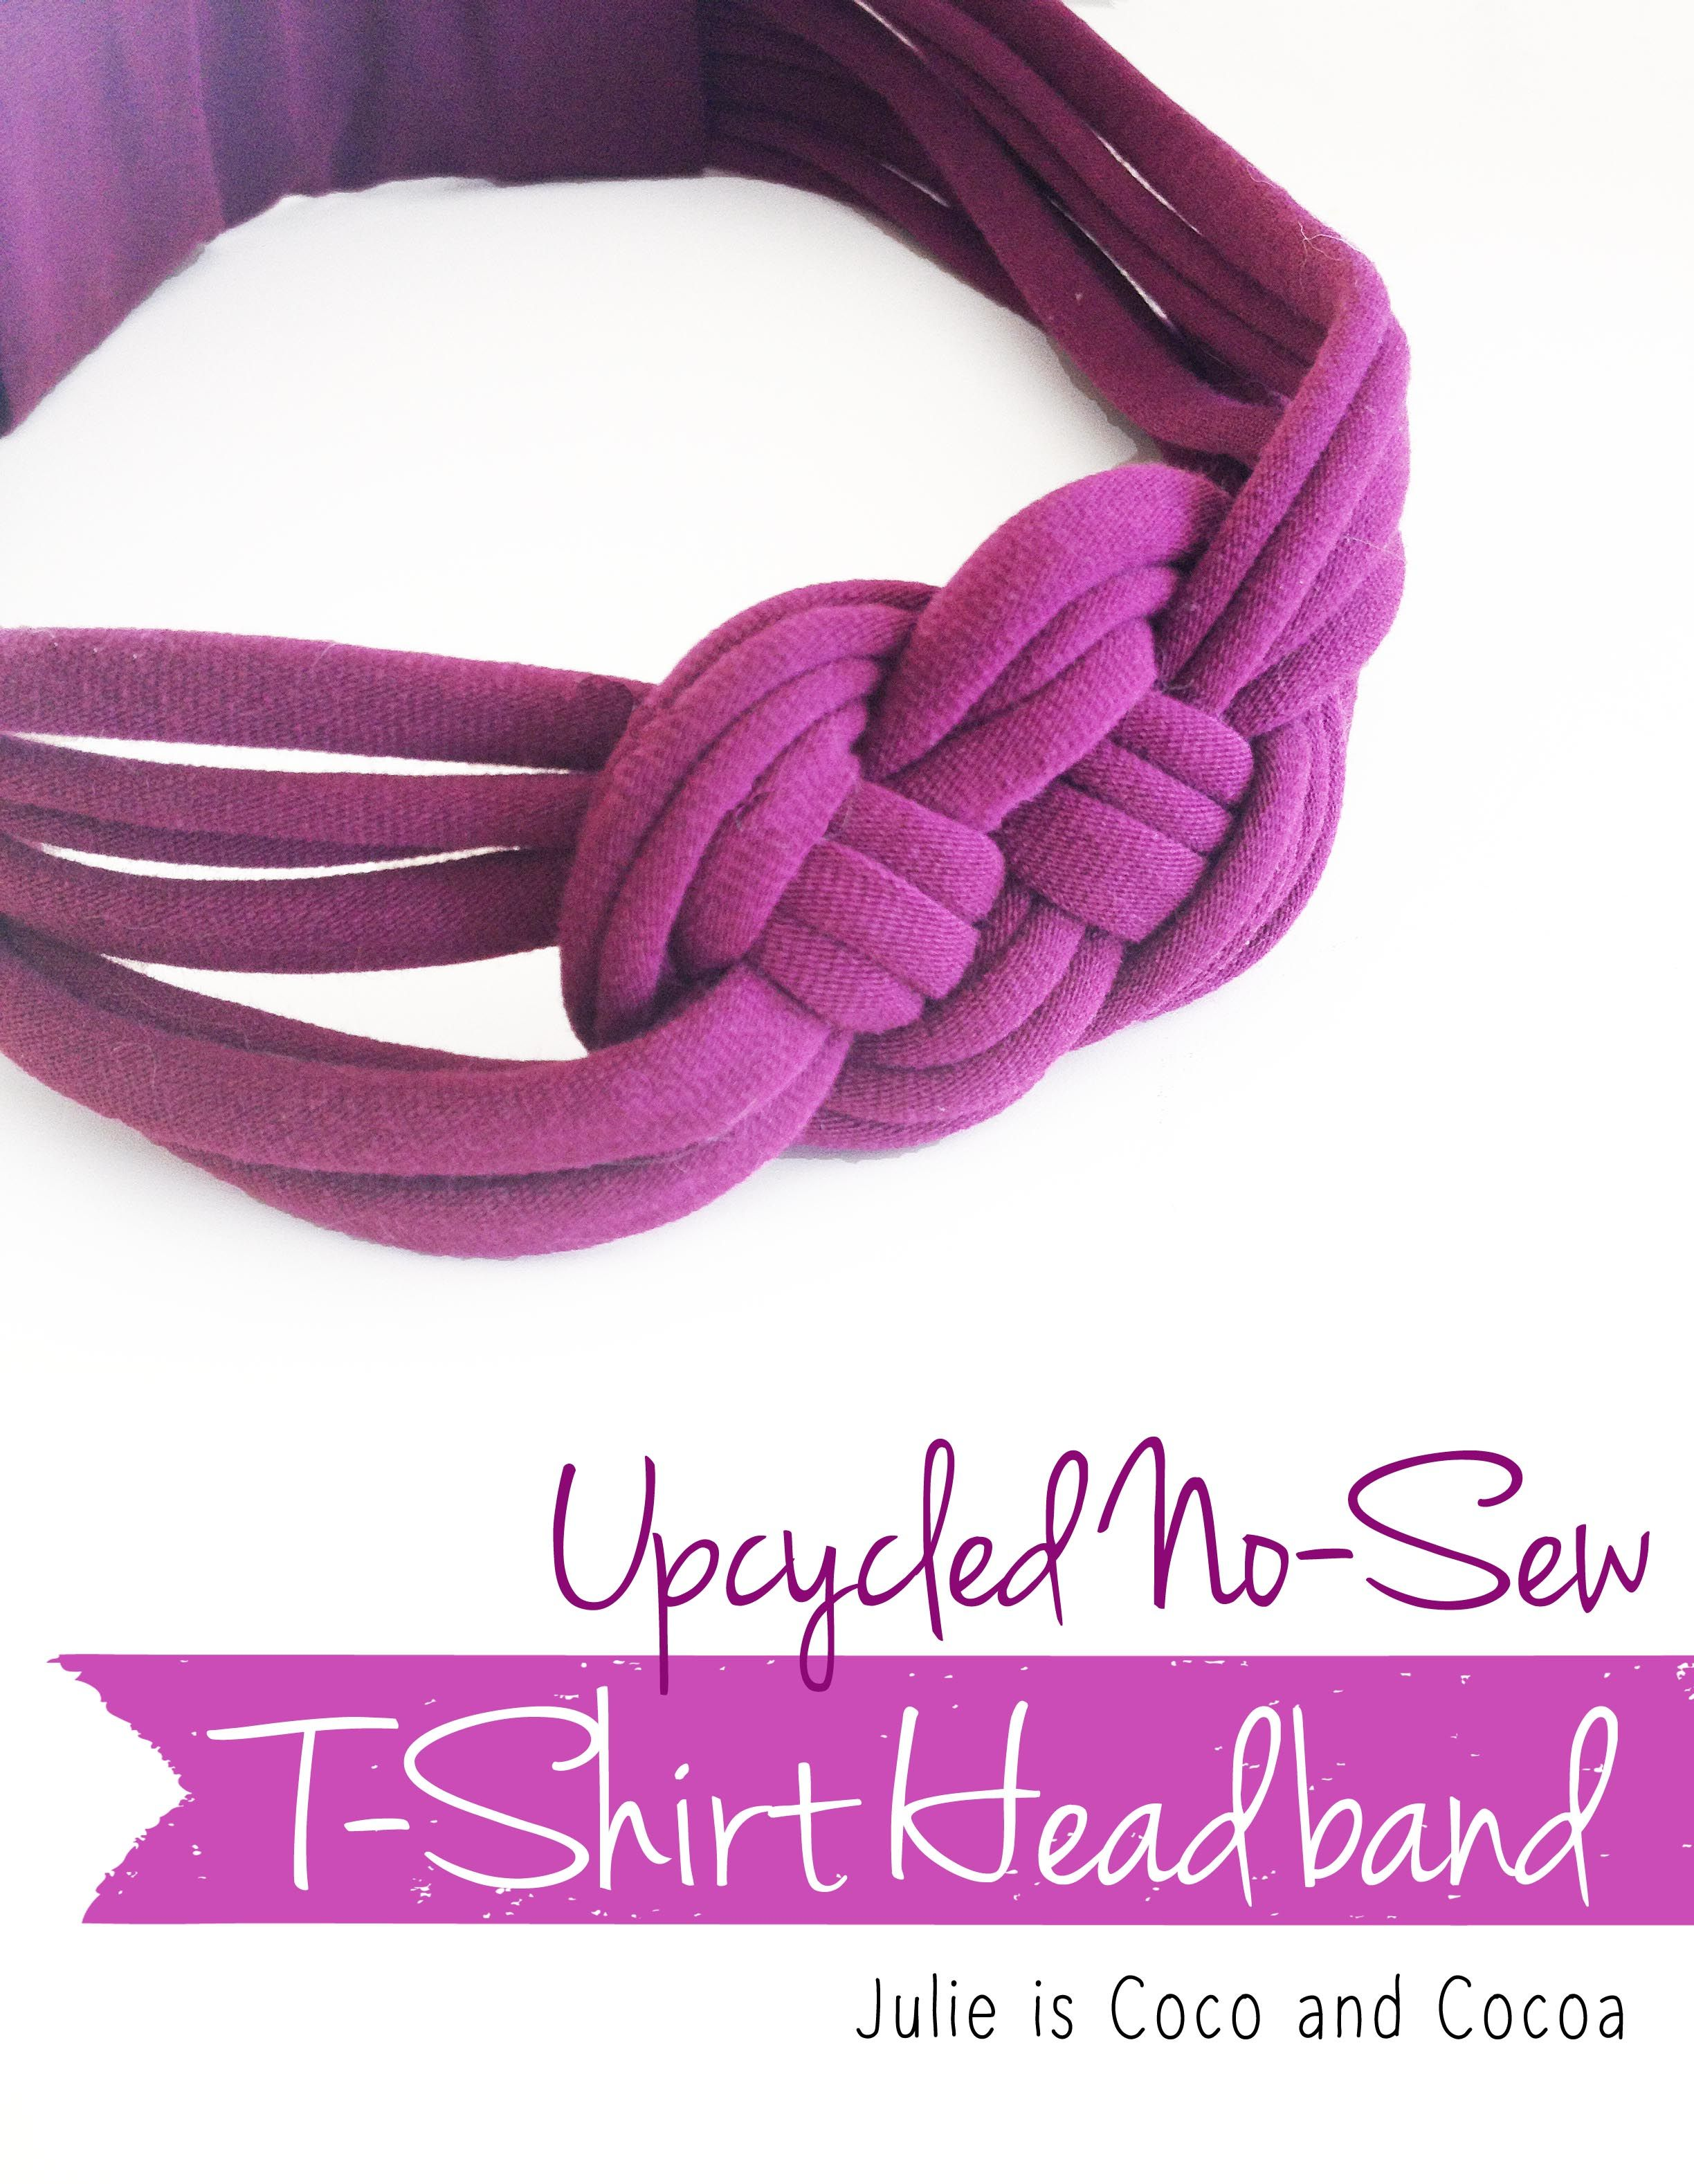 Design your own t-shirt brighton